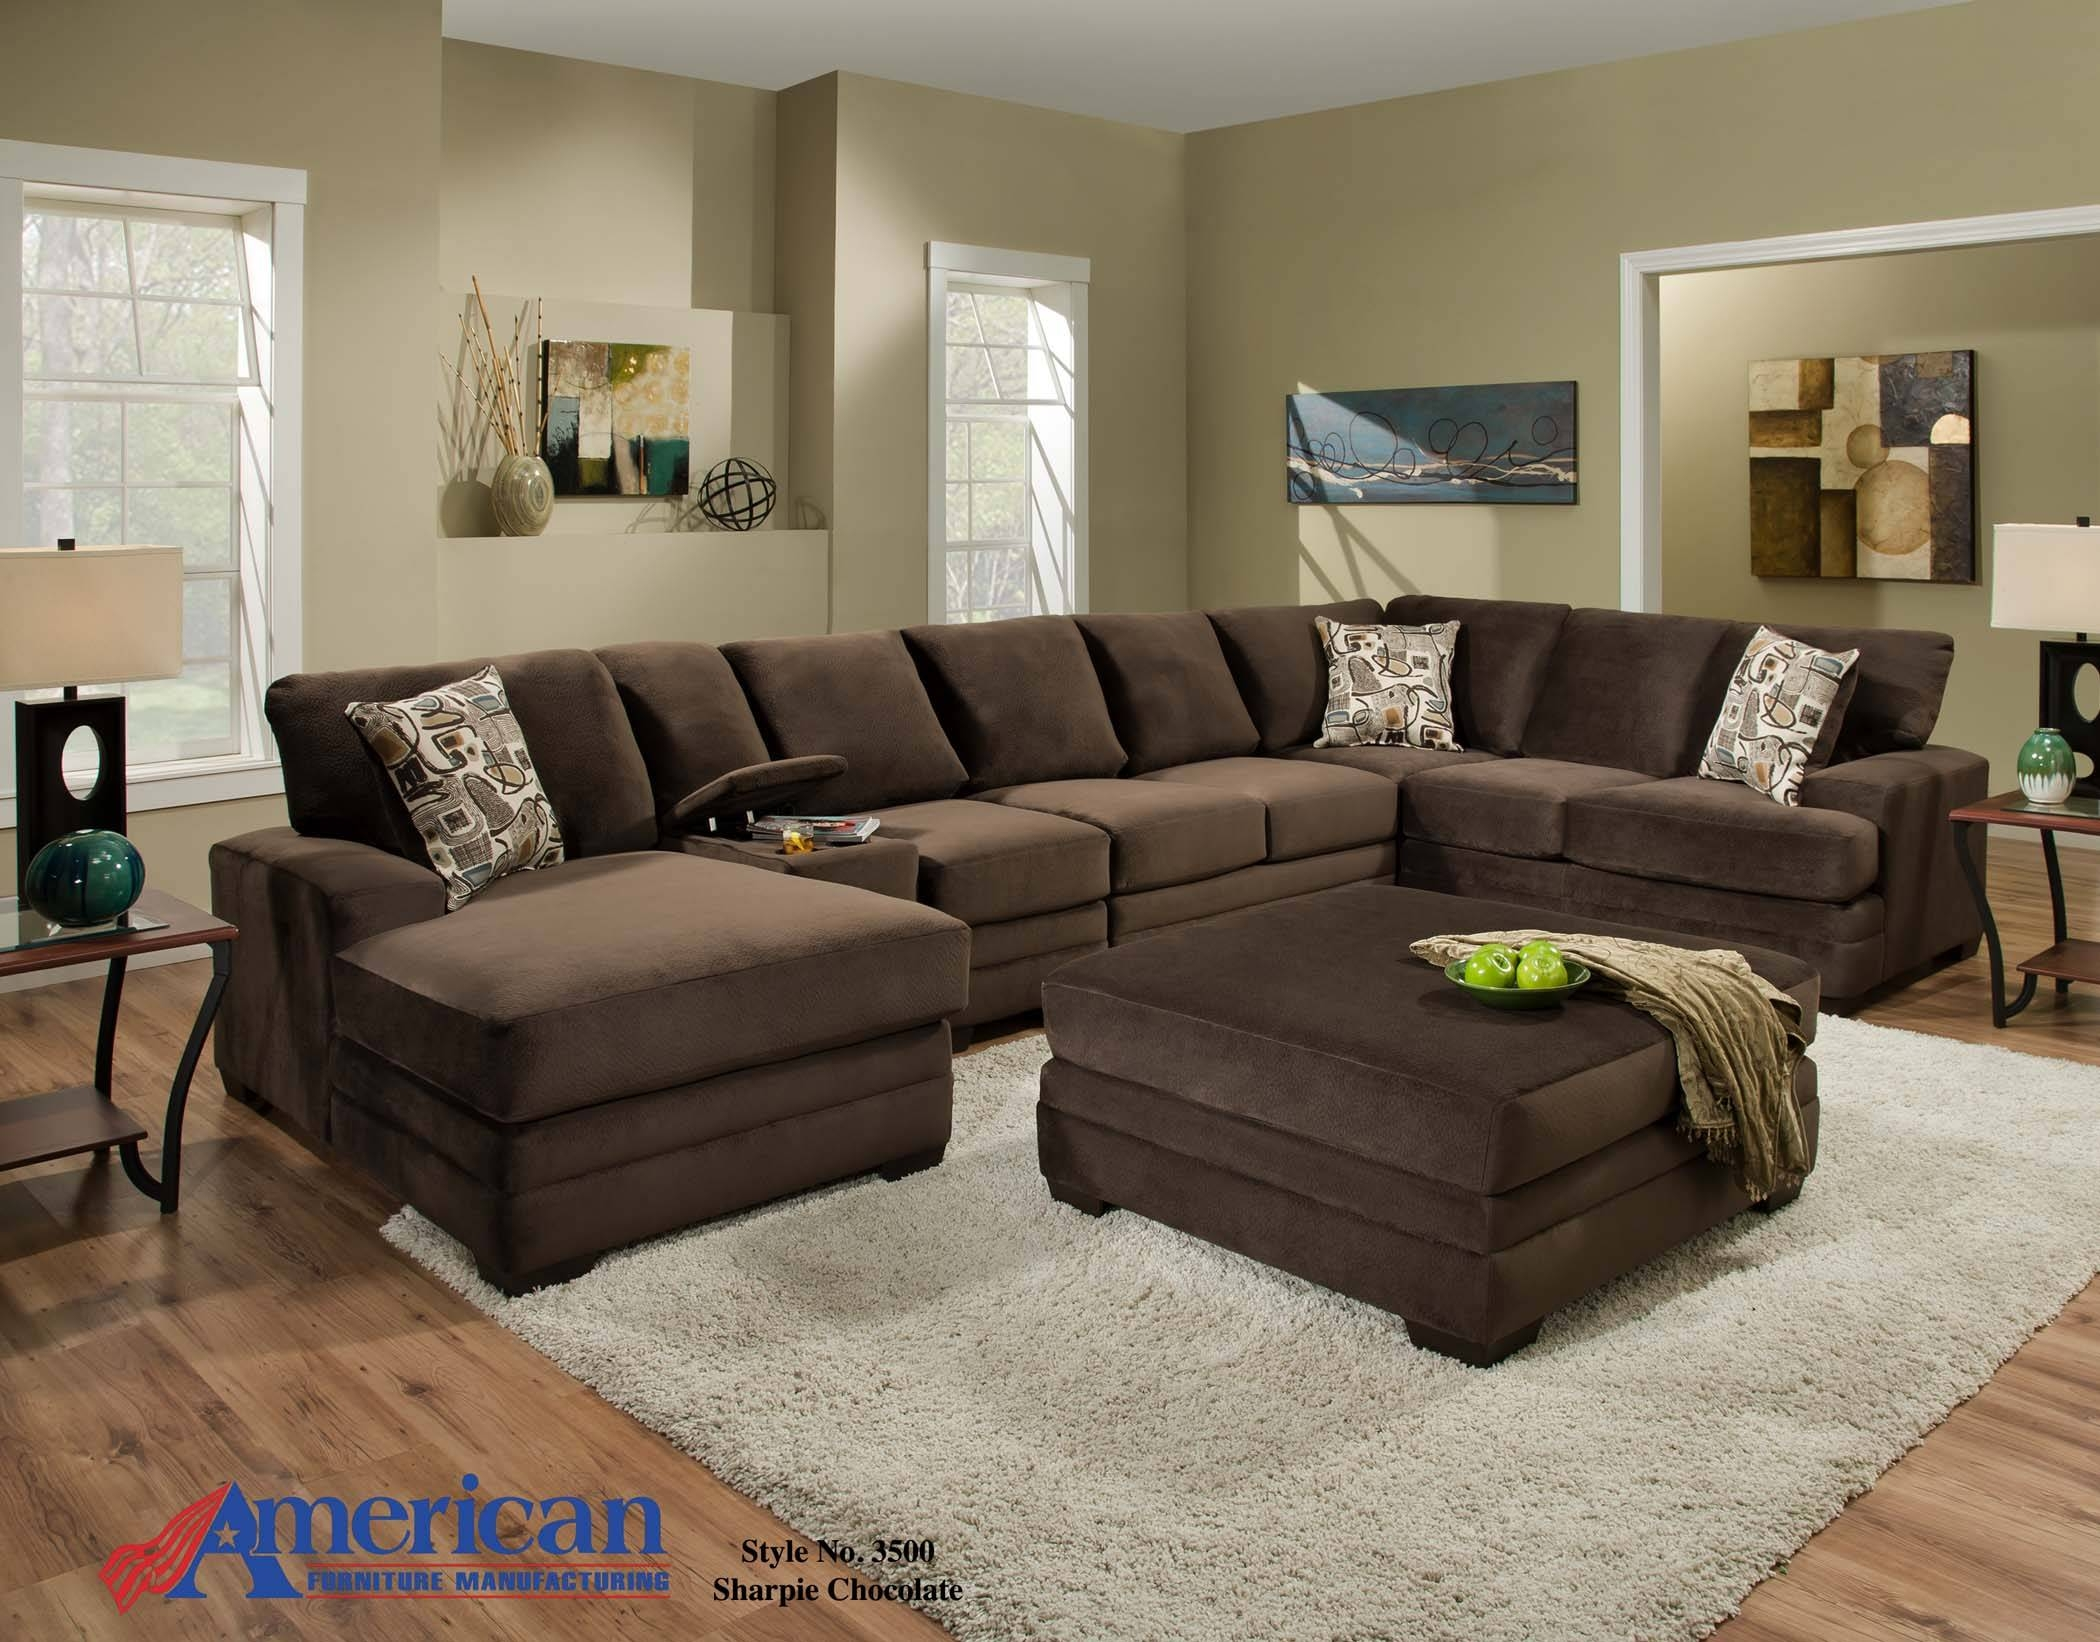 Stationary – Sectional within Chocolate Brown Sectional Sofa (Image 28 of 30)